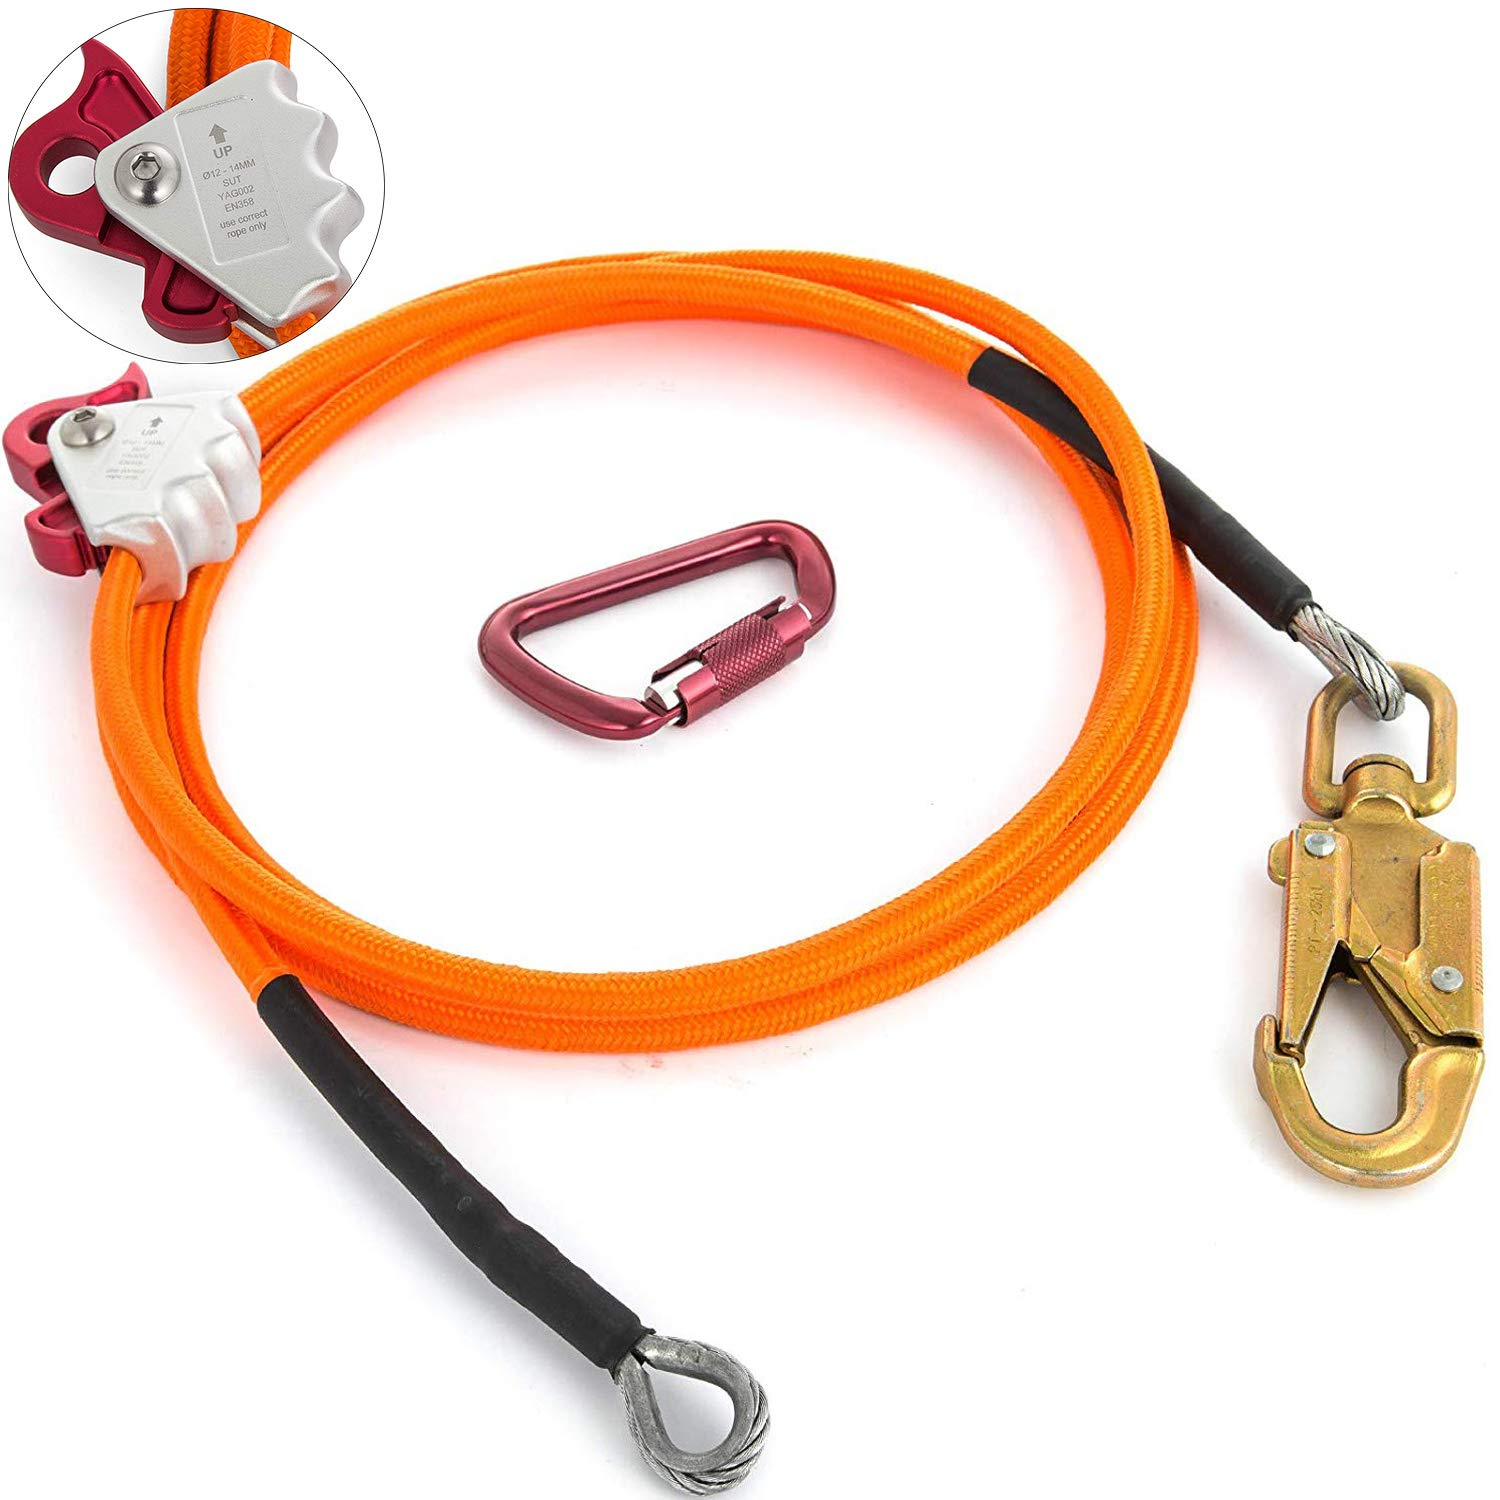 Happybuy Steel Wire Core Flip Line Kit 1/2'' X 8' Wire Core Flipline with Triple Lock Carabiner and Steel Swivel Snap Wire Core Flipline System for Arborists Climbers Tree Climbers (1/2'' X 8') by Happybuy